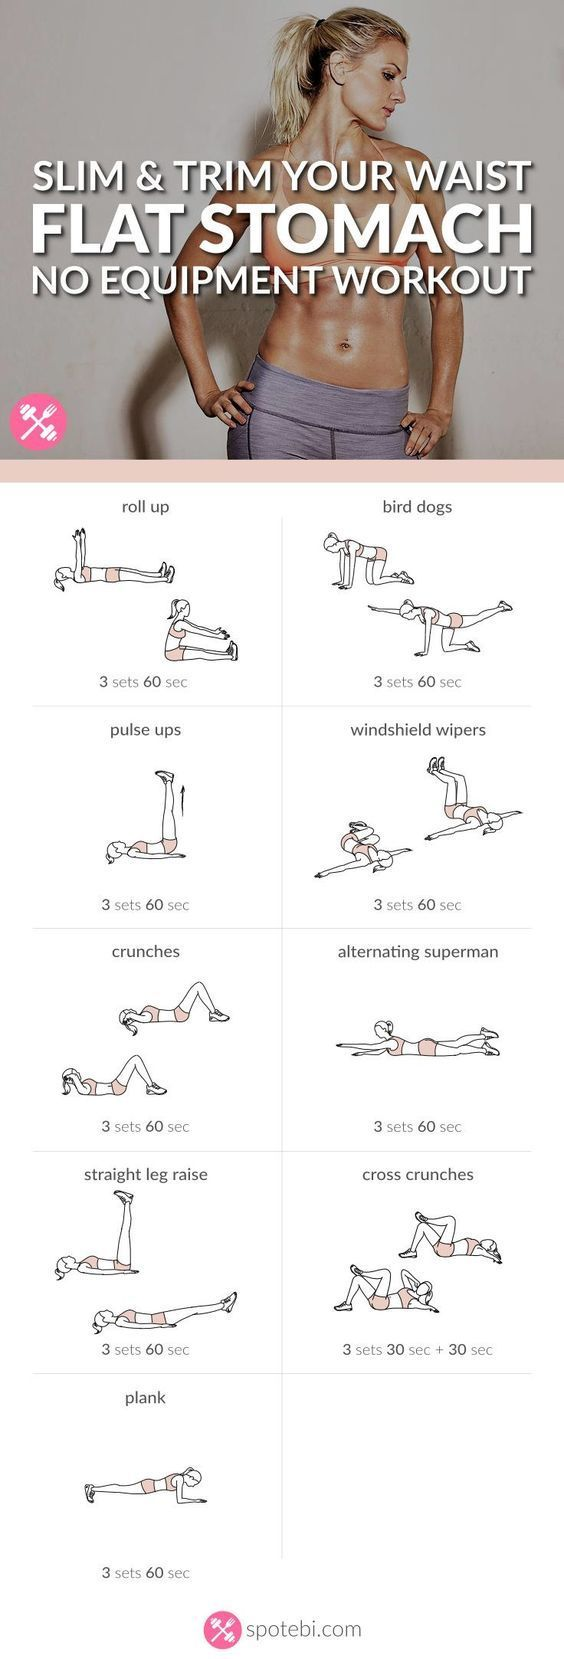 Want to easily whip your tummy into shape? Try this at home flat stomach workout for women, to sculpt your abs in no time, and get a slim, toned and trim belly. www.spotebi.com/...